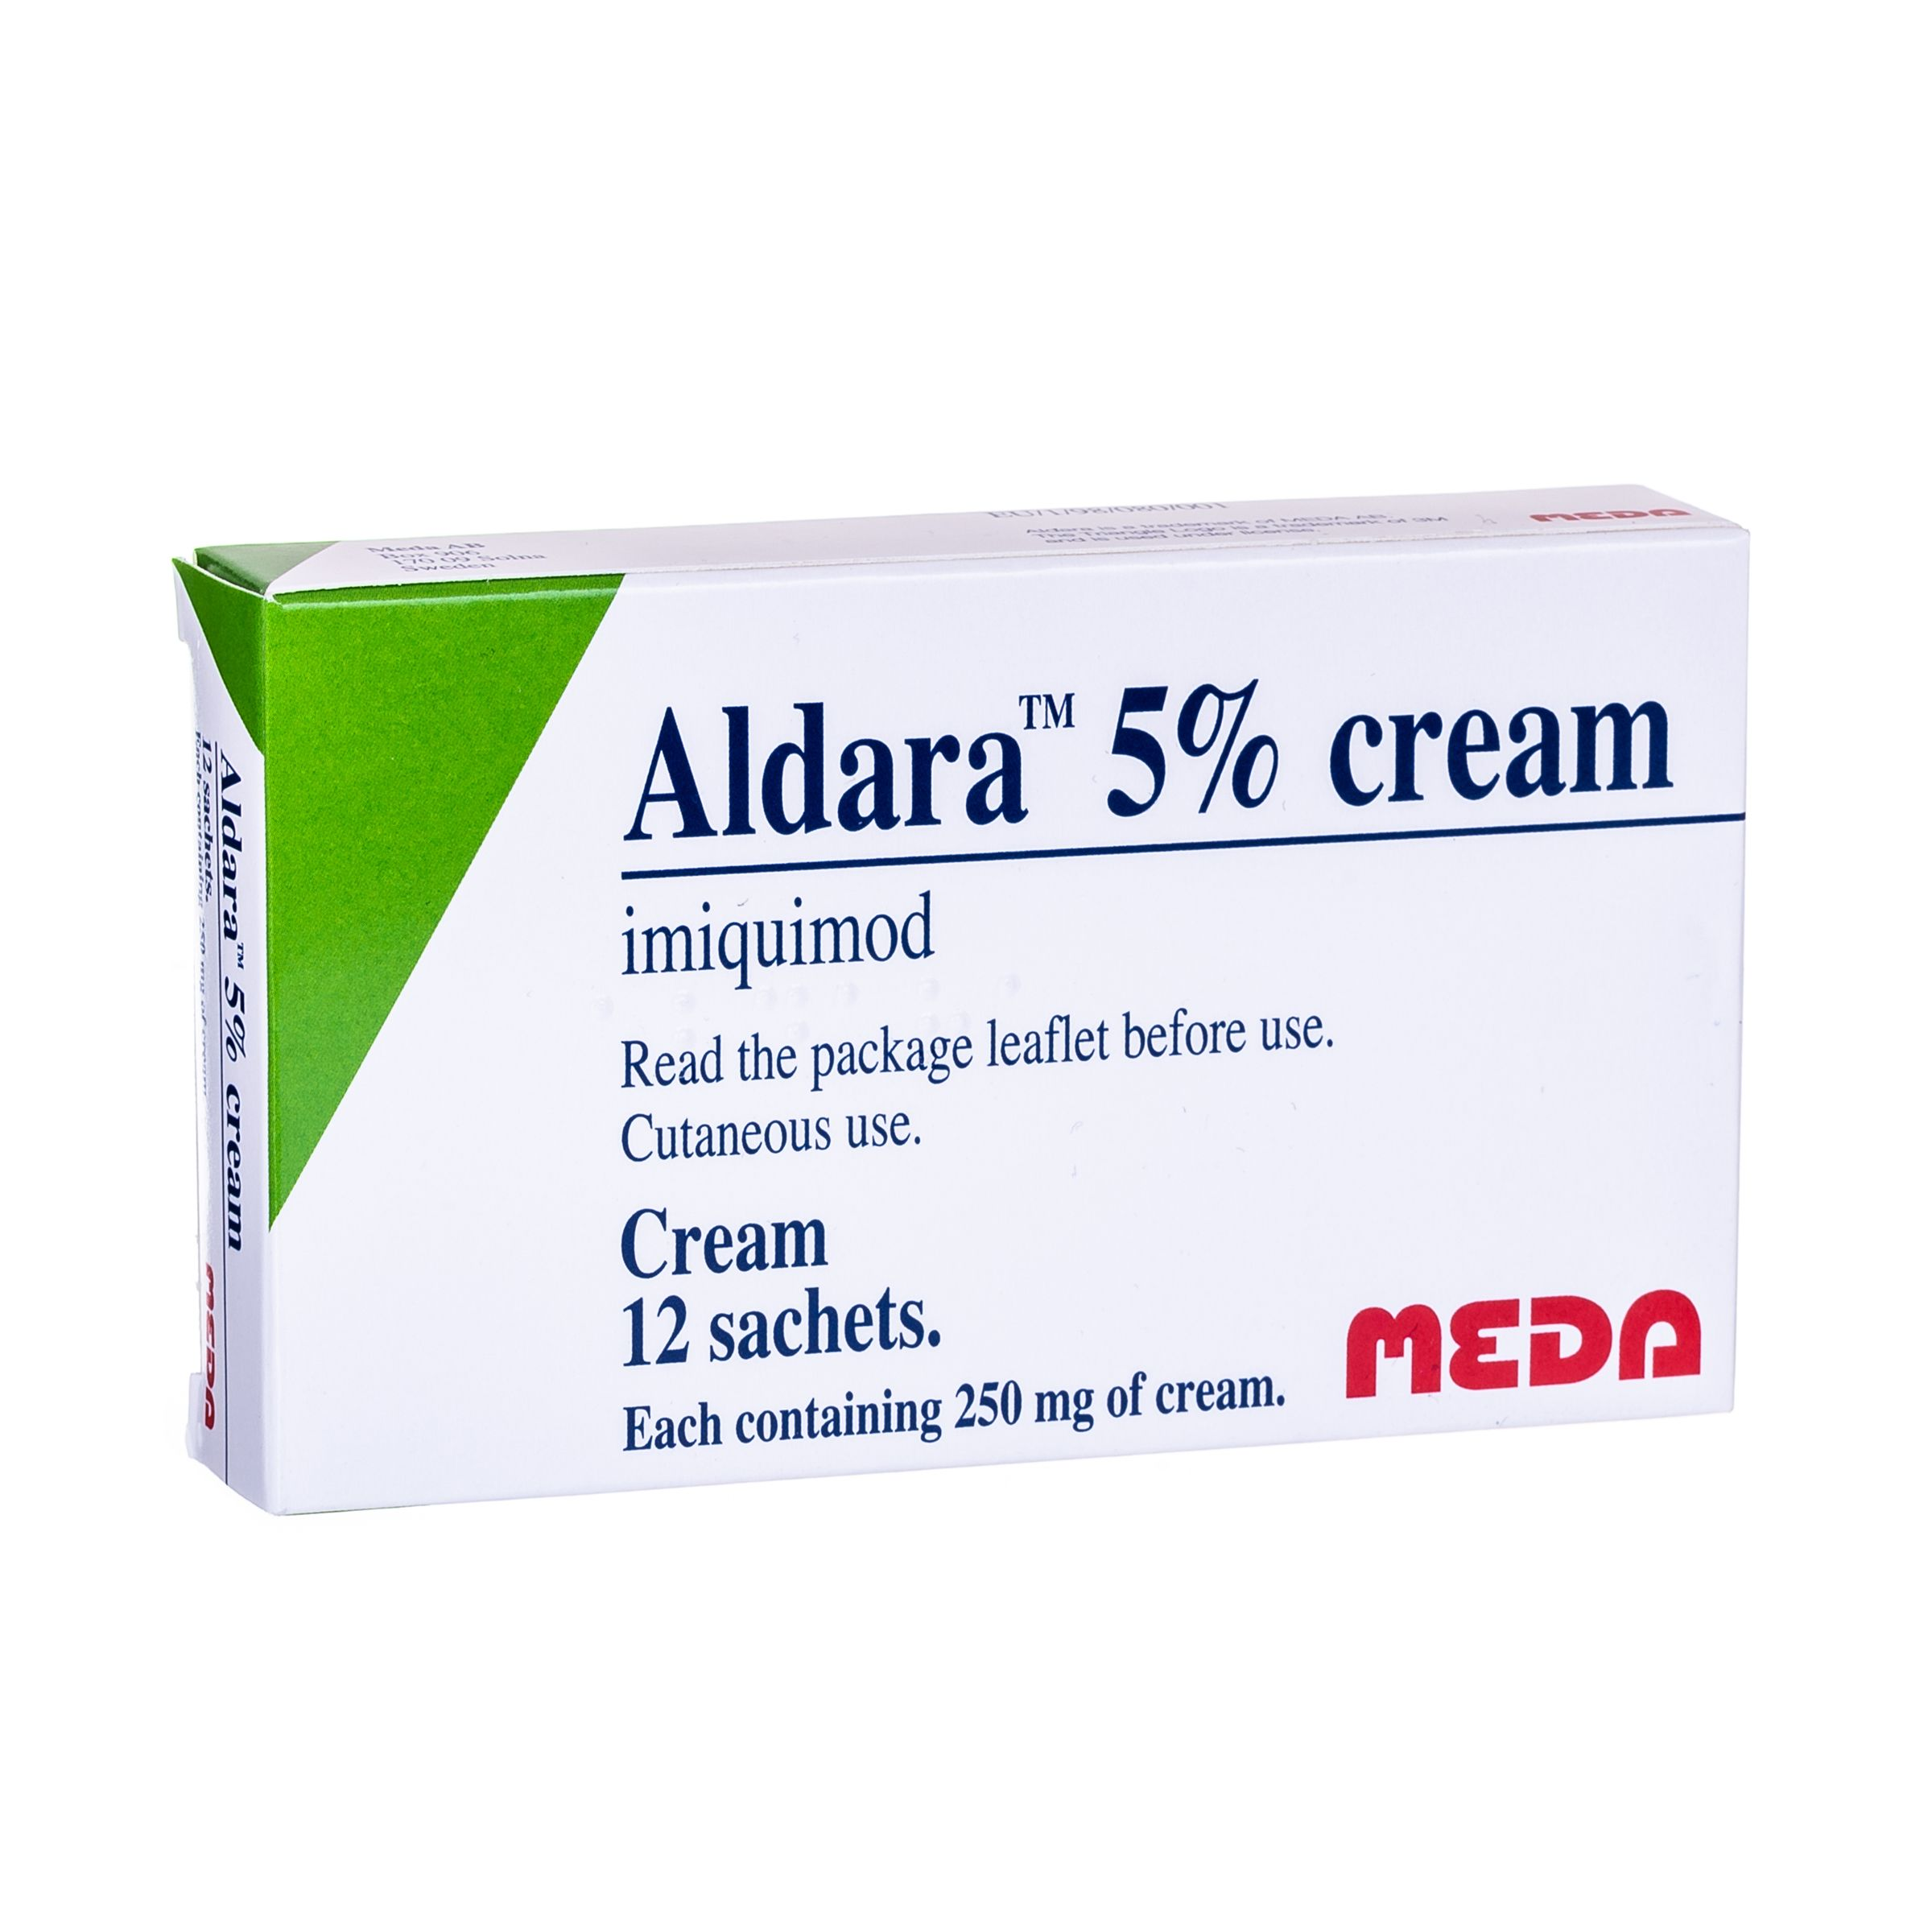 Hpv medicine cream. Is there any way to treat HPV infection? papillomatosis duct